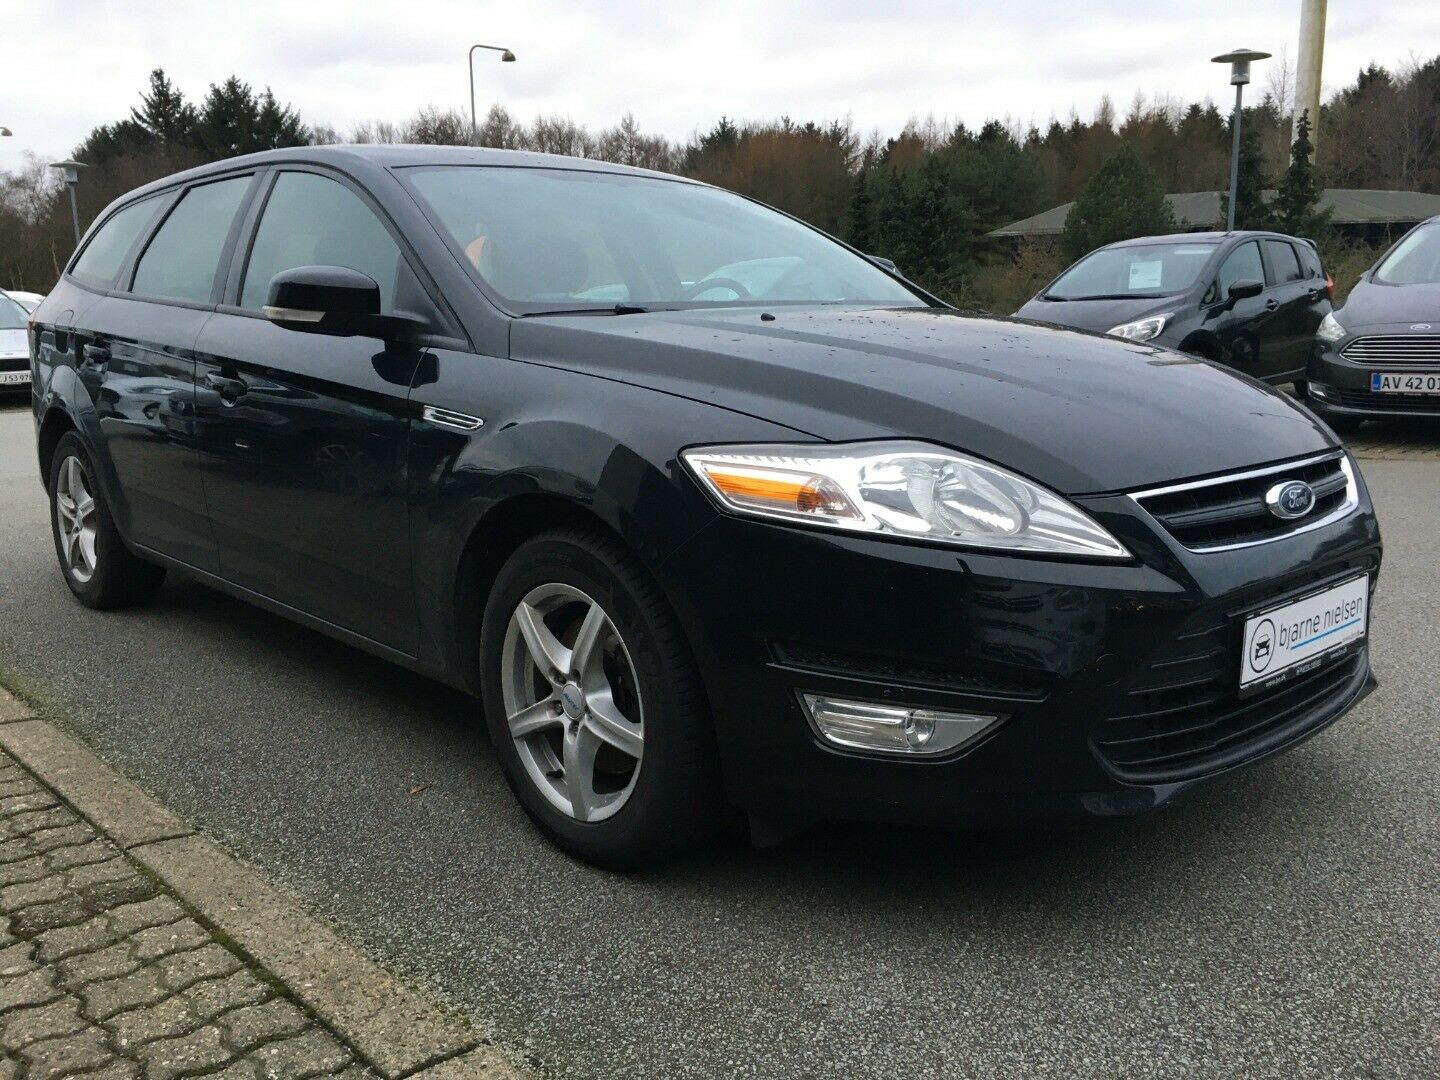 Ford Mondeo 2,0 TDCi 140 Trend stc. aut. - billede 2